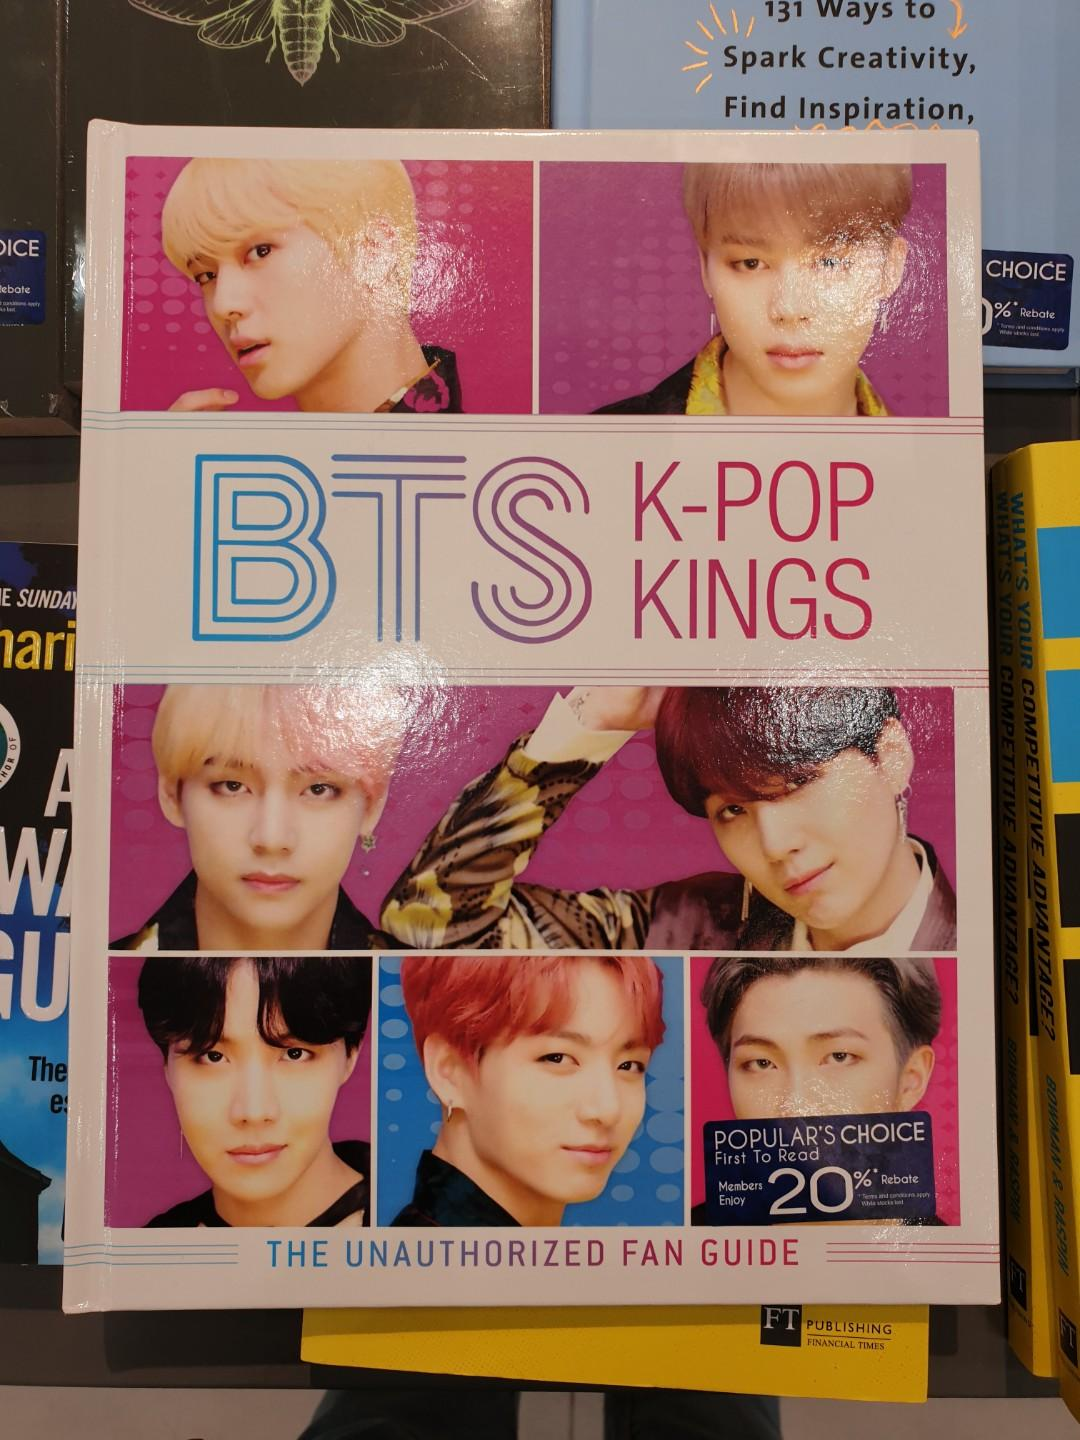 [PREORDER] BTS K-Pop Kings the Unauthorized Fan Guide